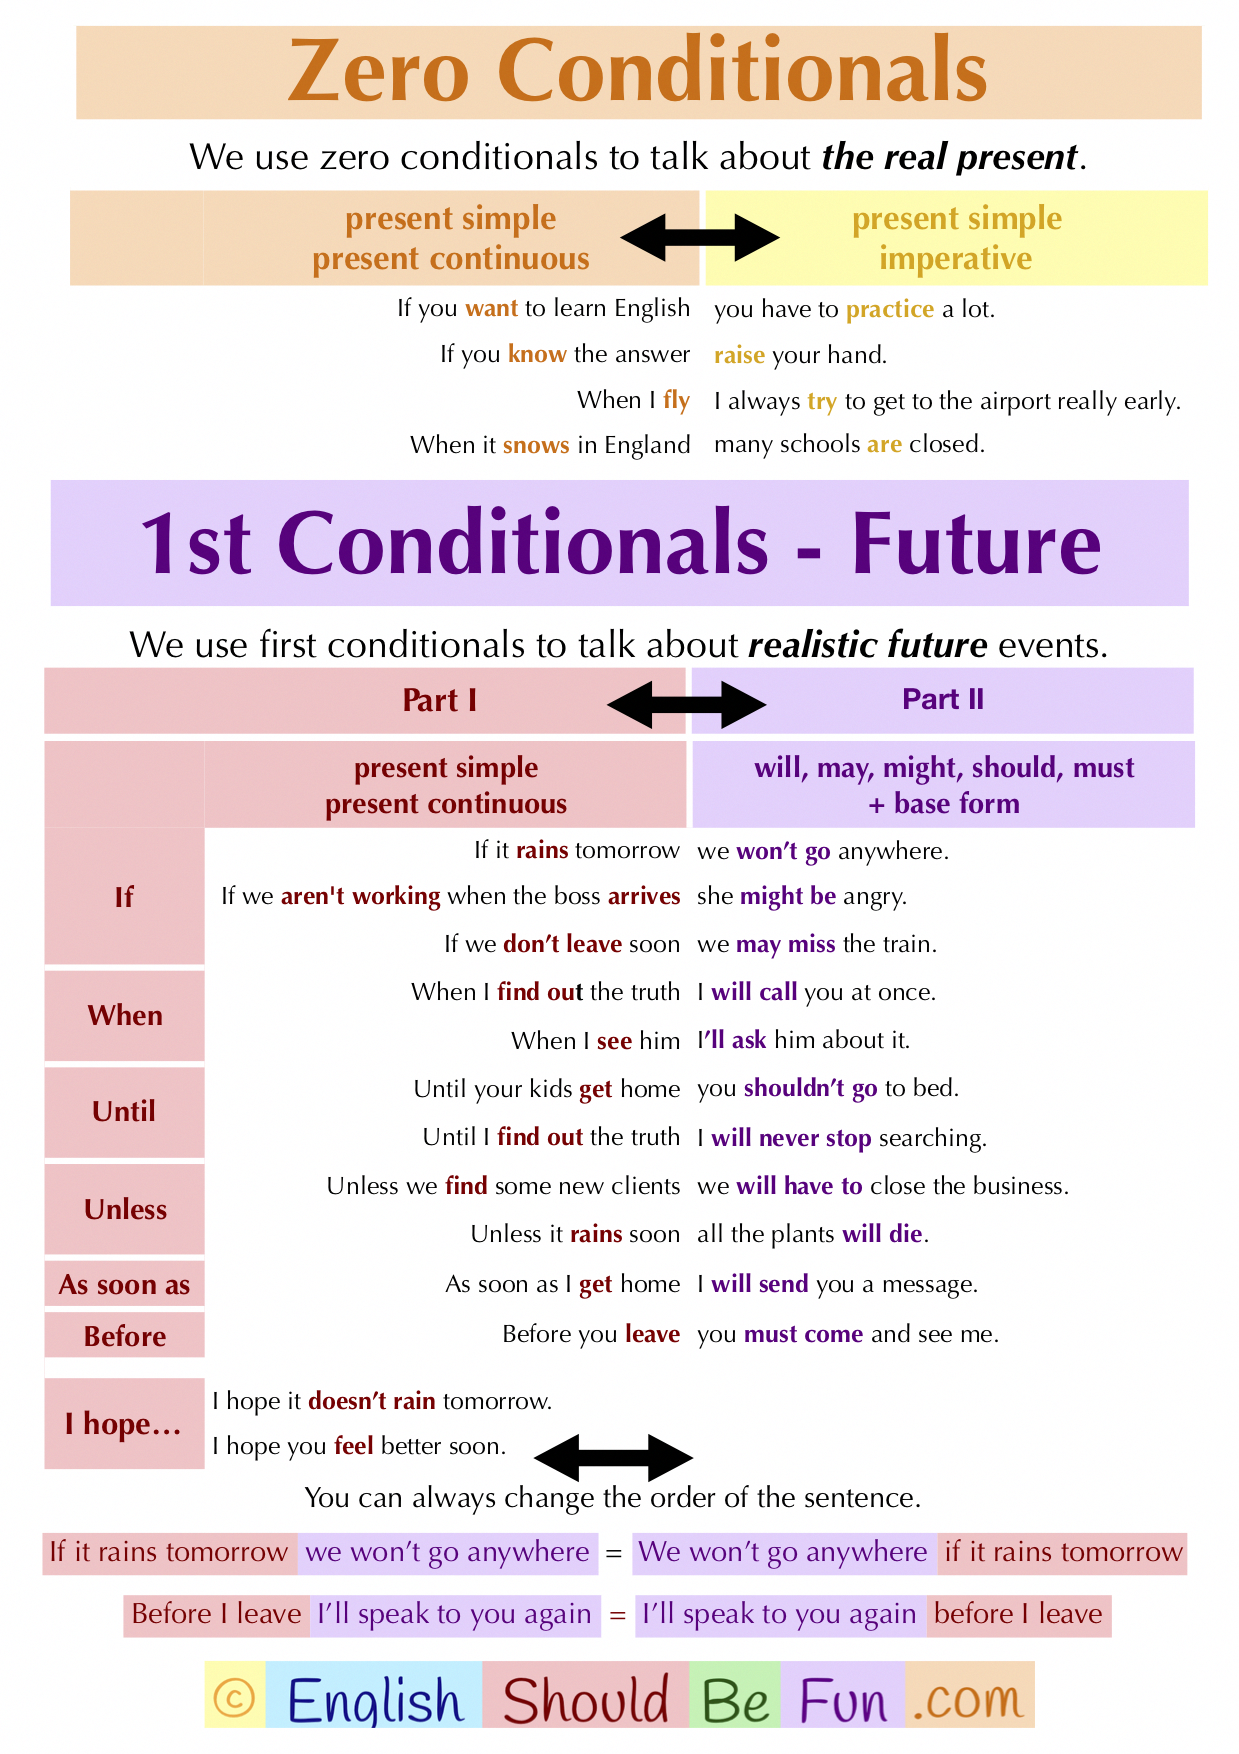 1st Conditionals